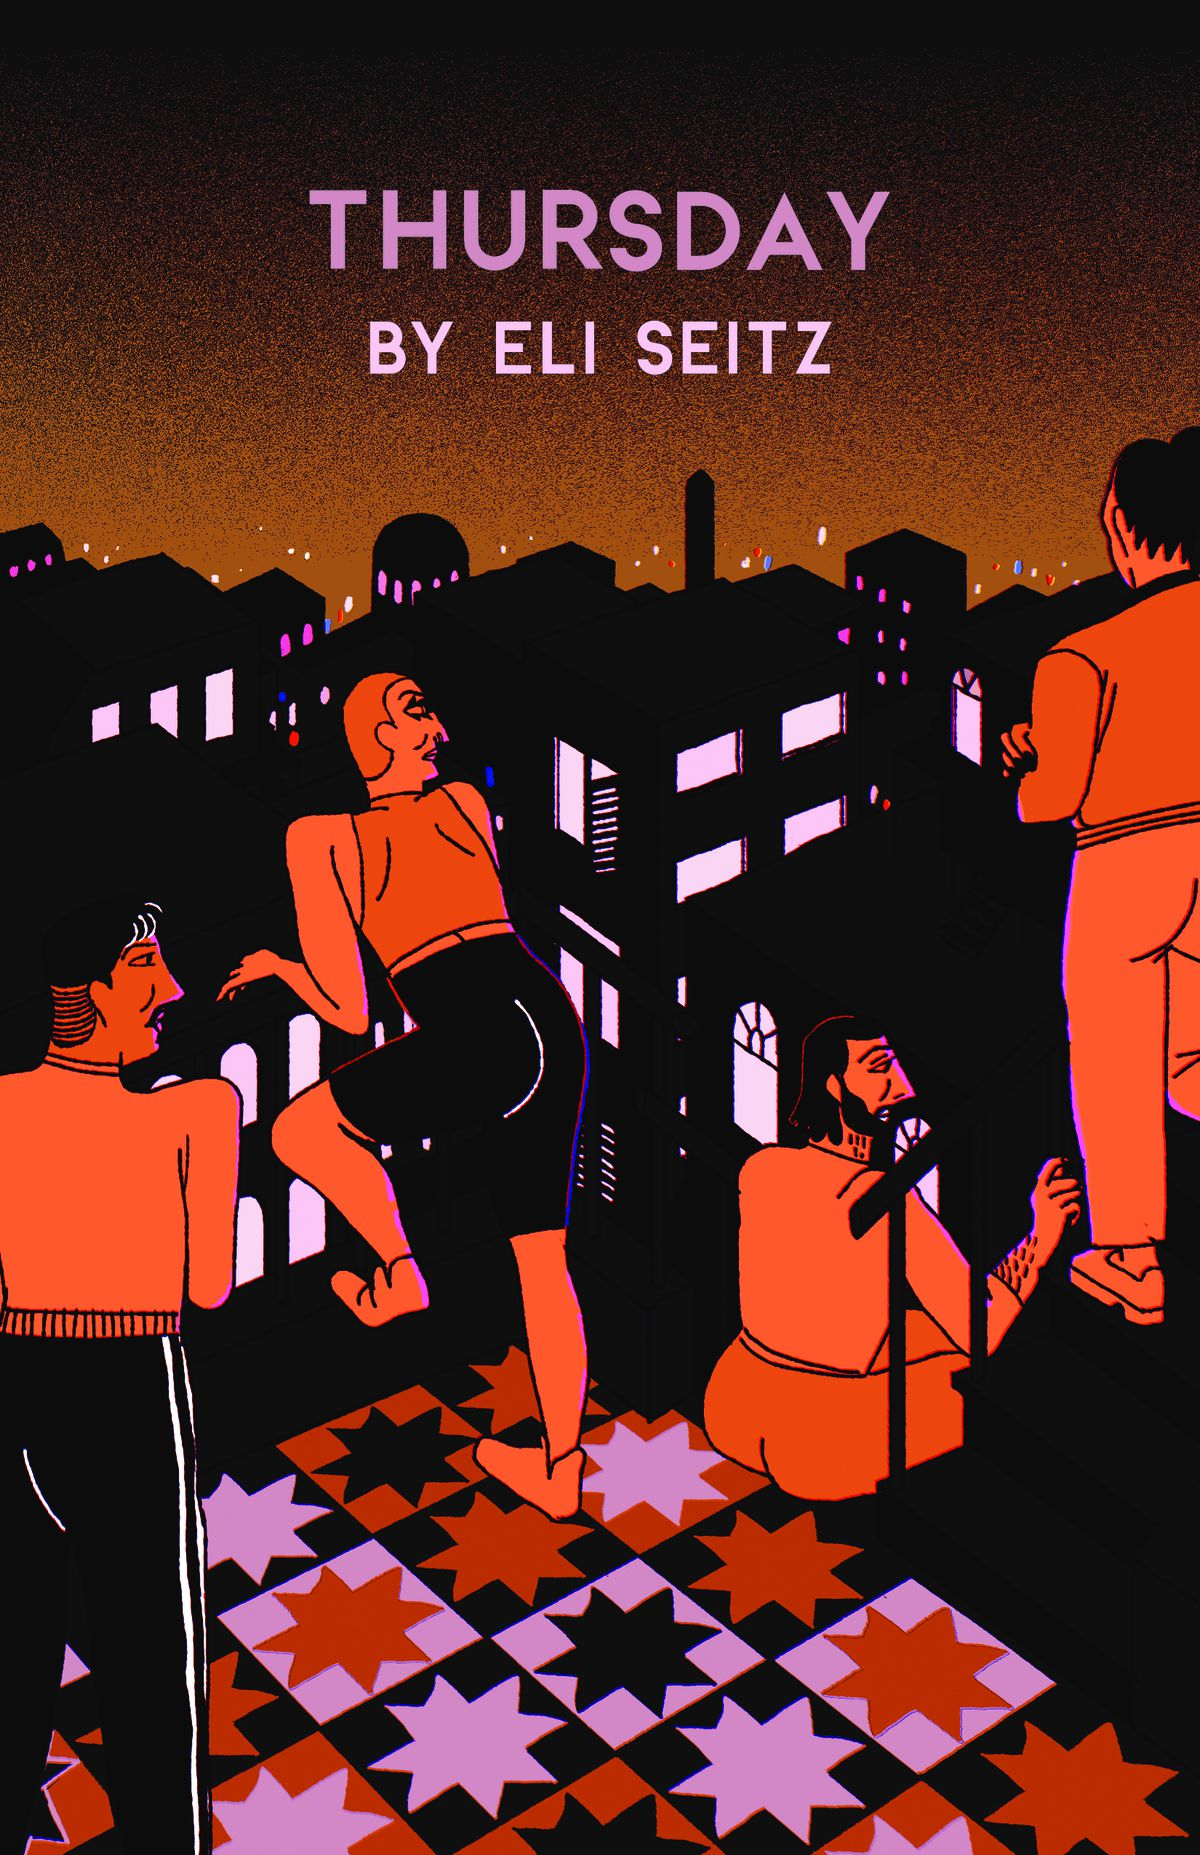 Cover art for Thursday by Eli Seitz shows people gathered on a rooftop at sunset.